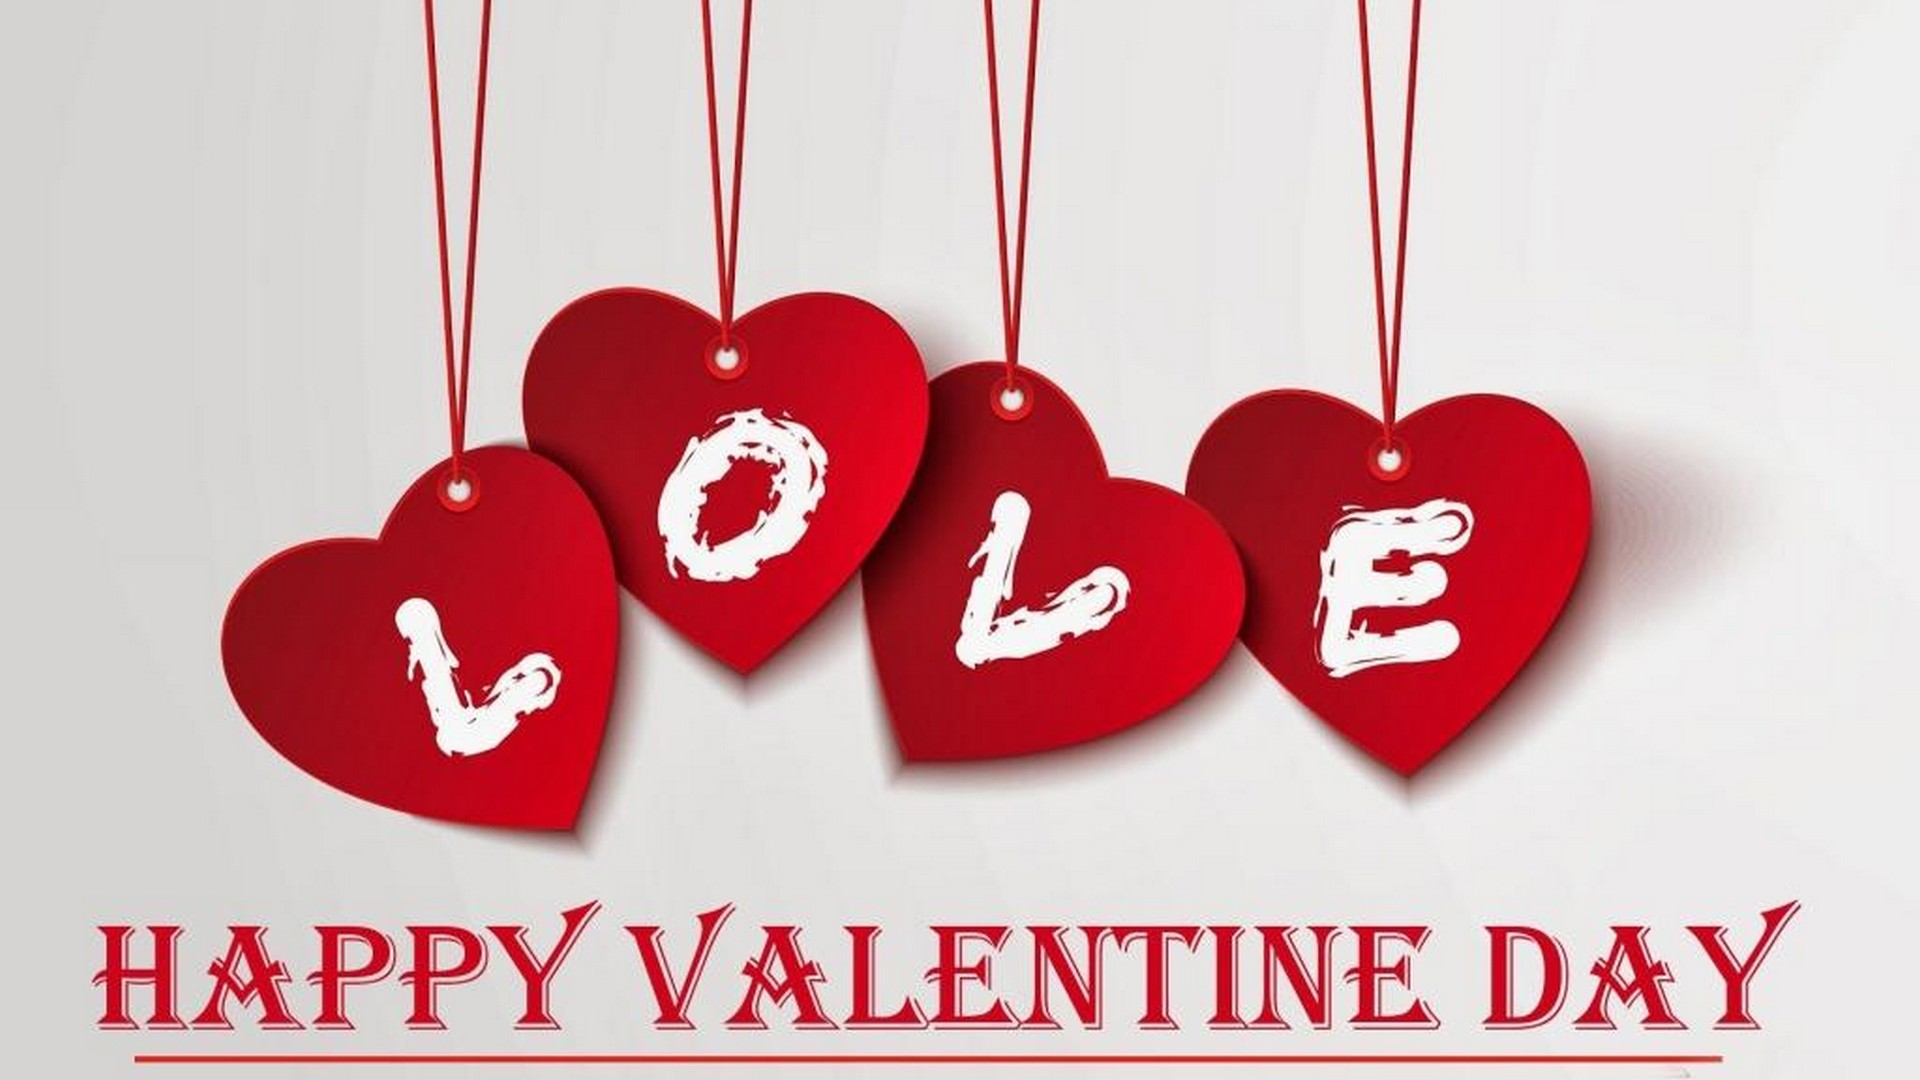 Cute Love Valentines Day Wallpaper 2021 Cute Wallpapers 1920x1080